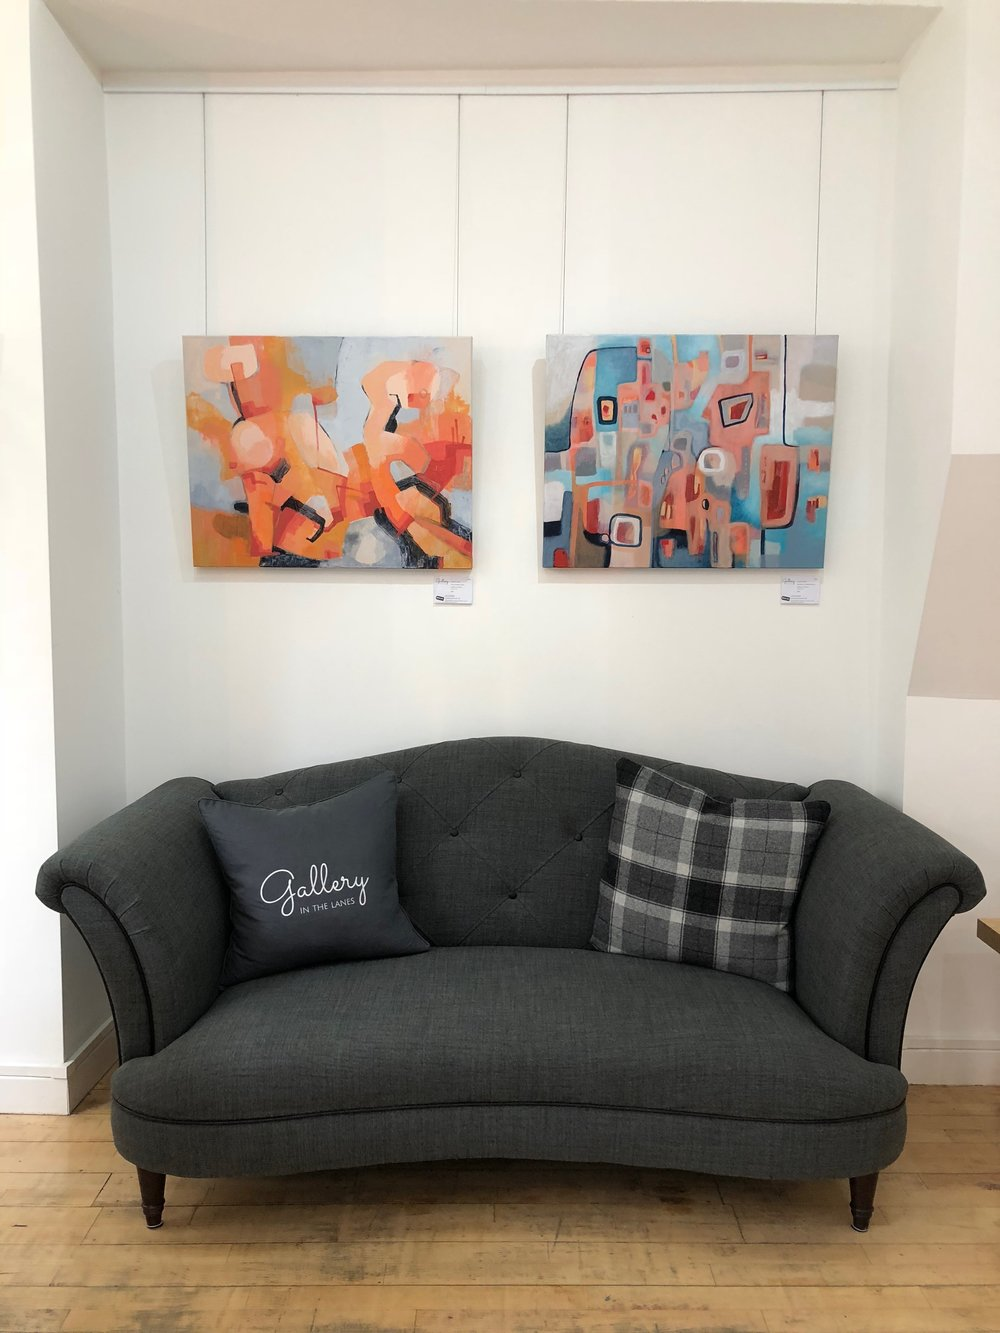 My paintings 'Rock Yourself To Sleep' and 'Freedom In A Mirrored Room' at Gallery In The Lanes.